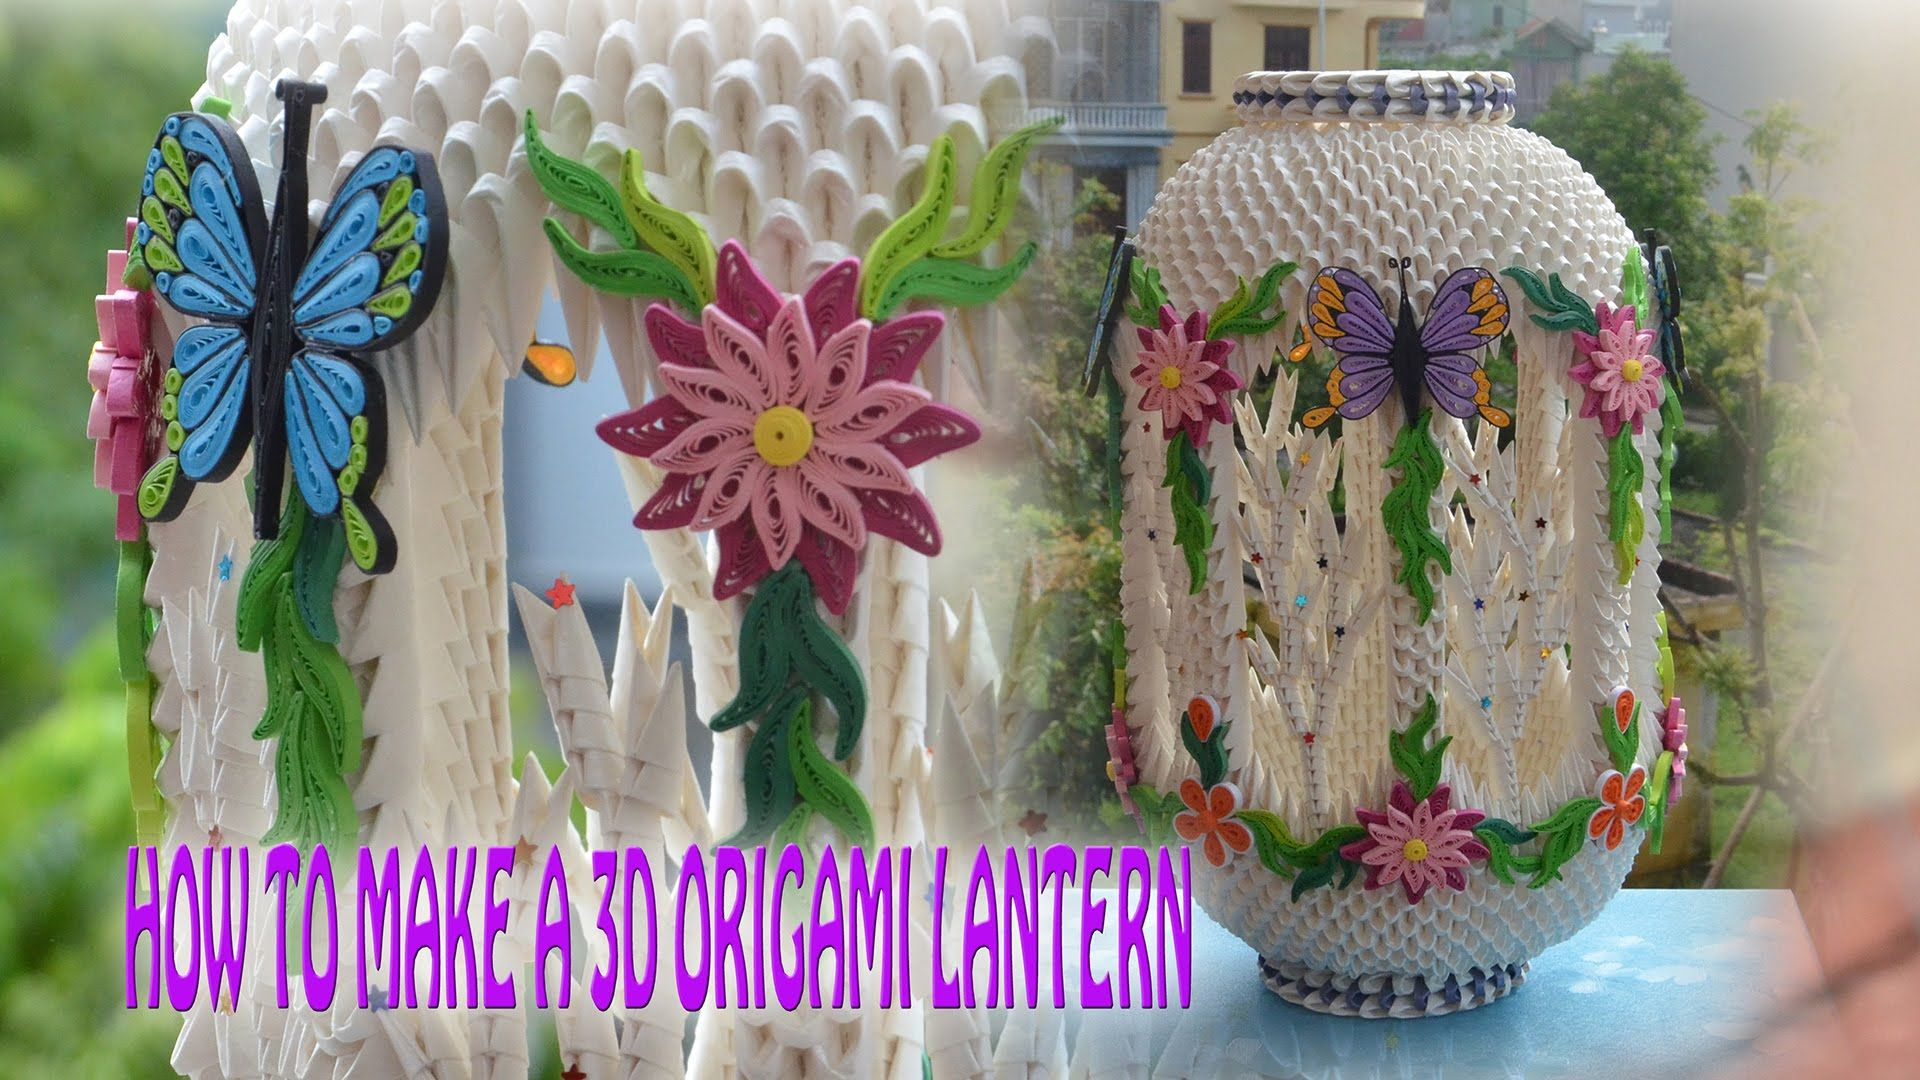 How To Make A 3d Origami Lantern Diy Paper Lantern Tutorial Paper Lam Origami Origami Origami Lantern 3d Origami